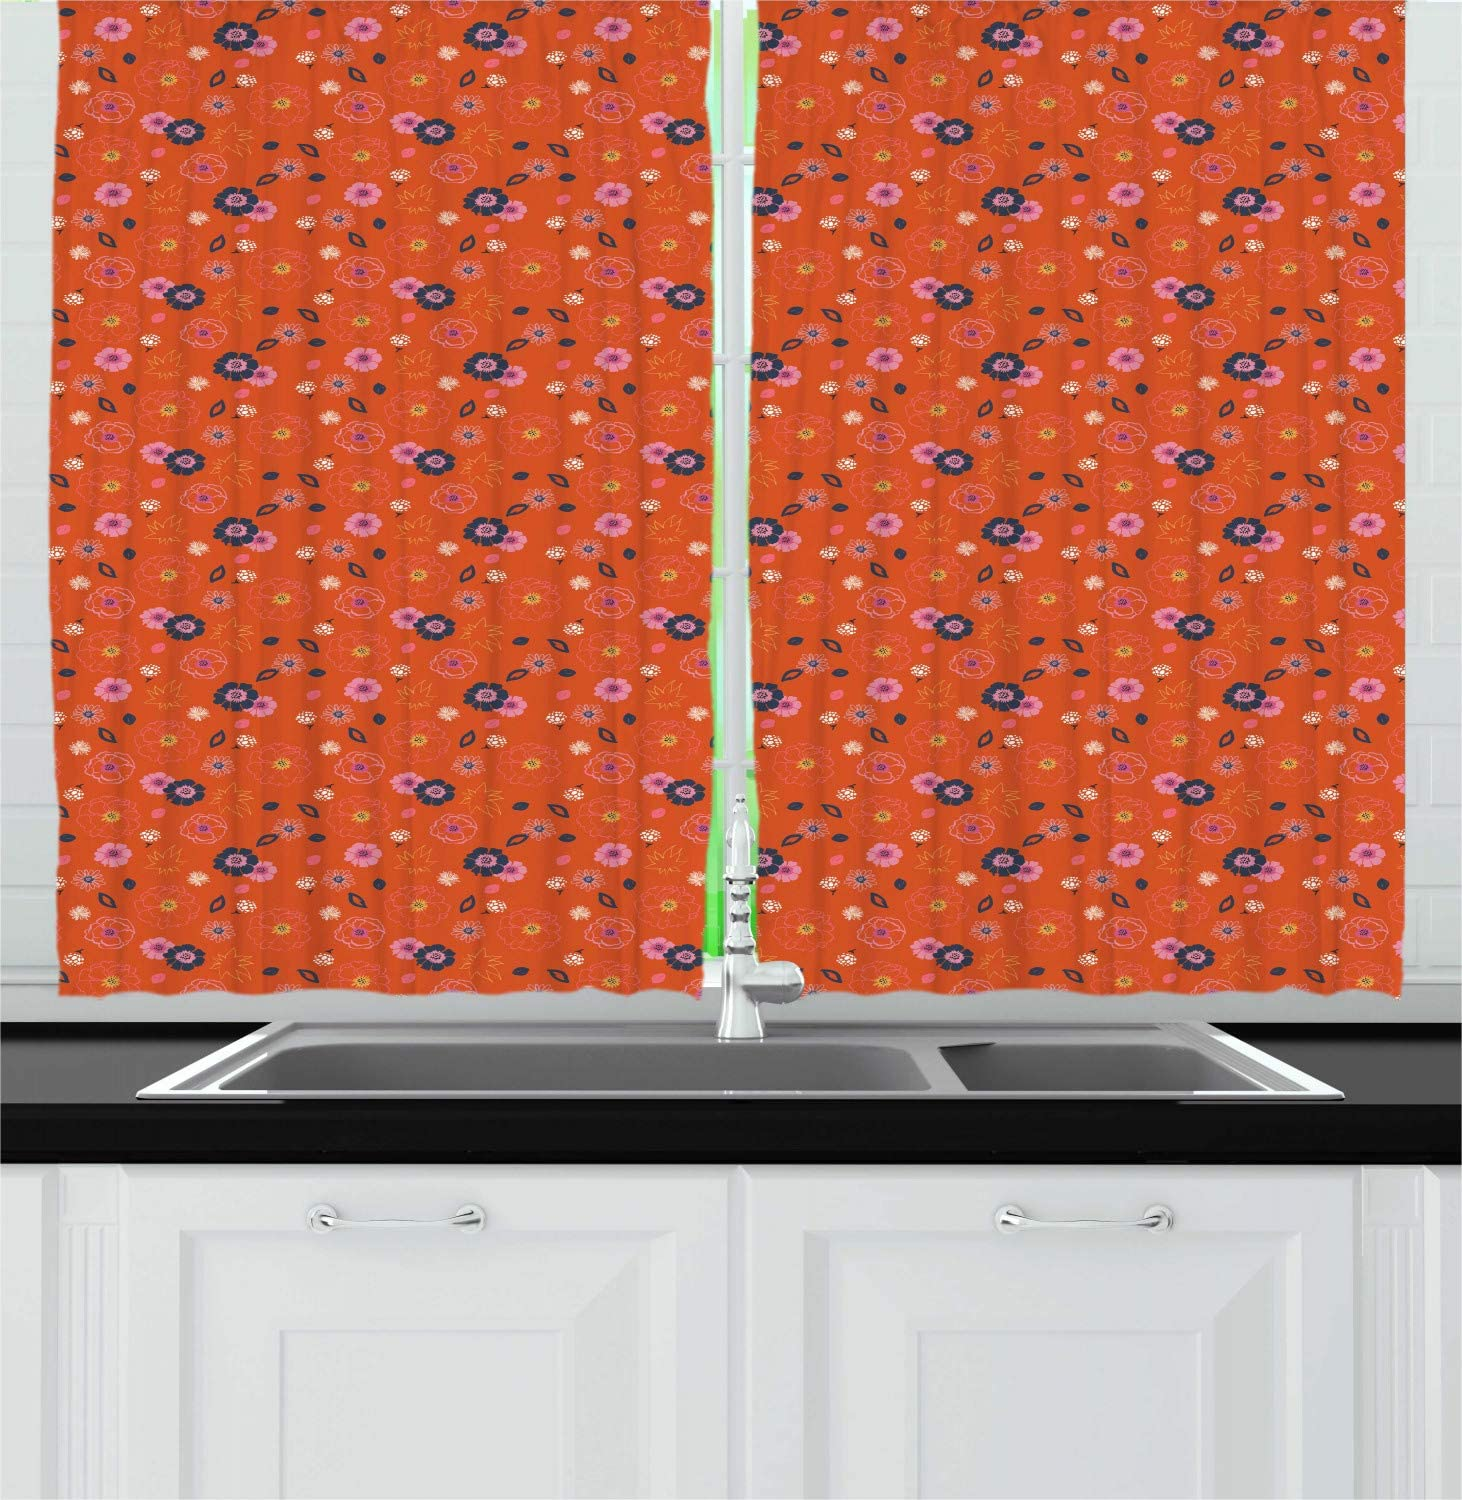 Burnt Orange Multicolor Spring Kitchen Curtains Meadow Flora Rural Blossoming Bouquets Aster Daisy Gardening Pattern Window Curtains Aliexpress